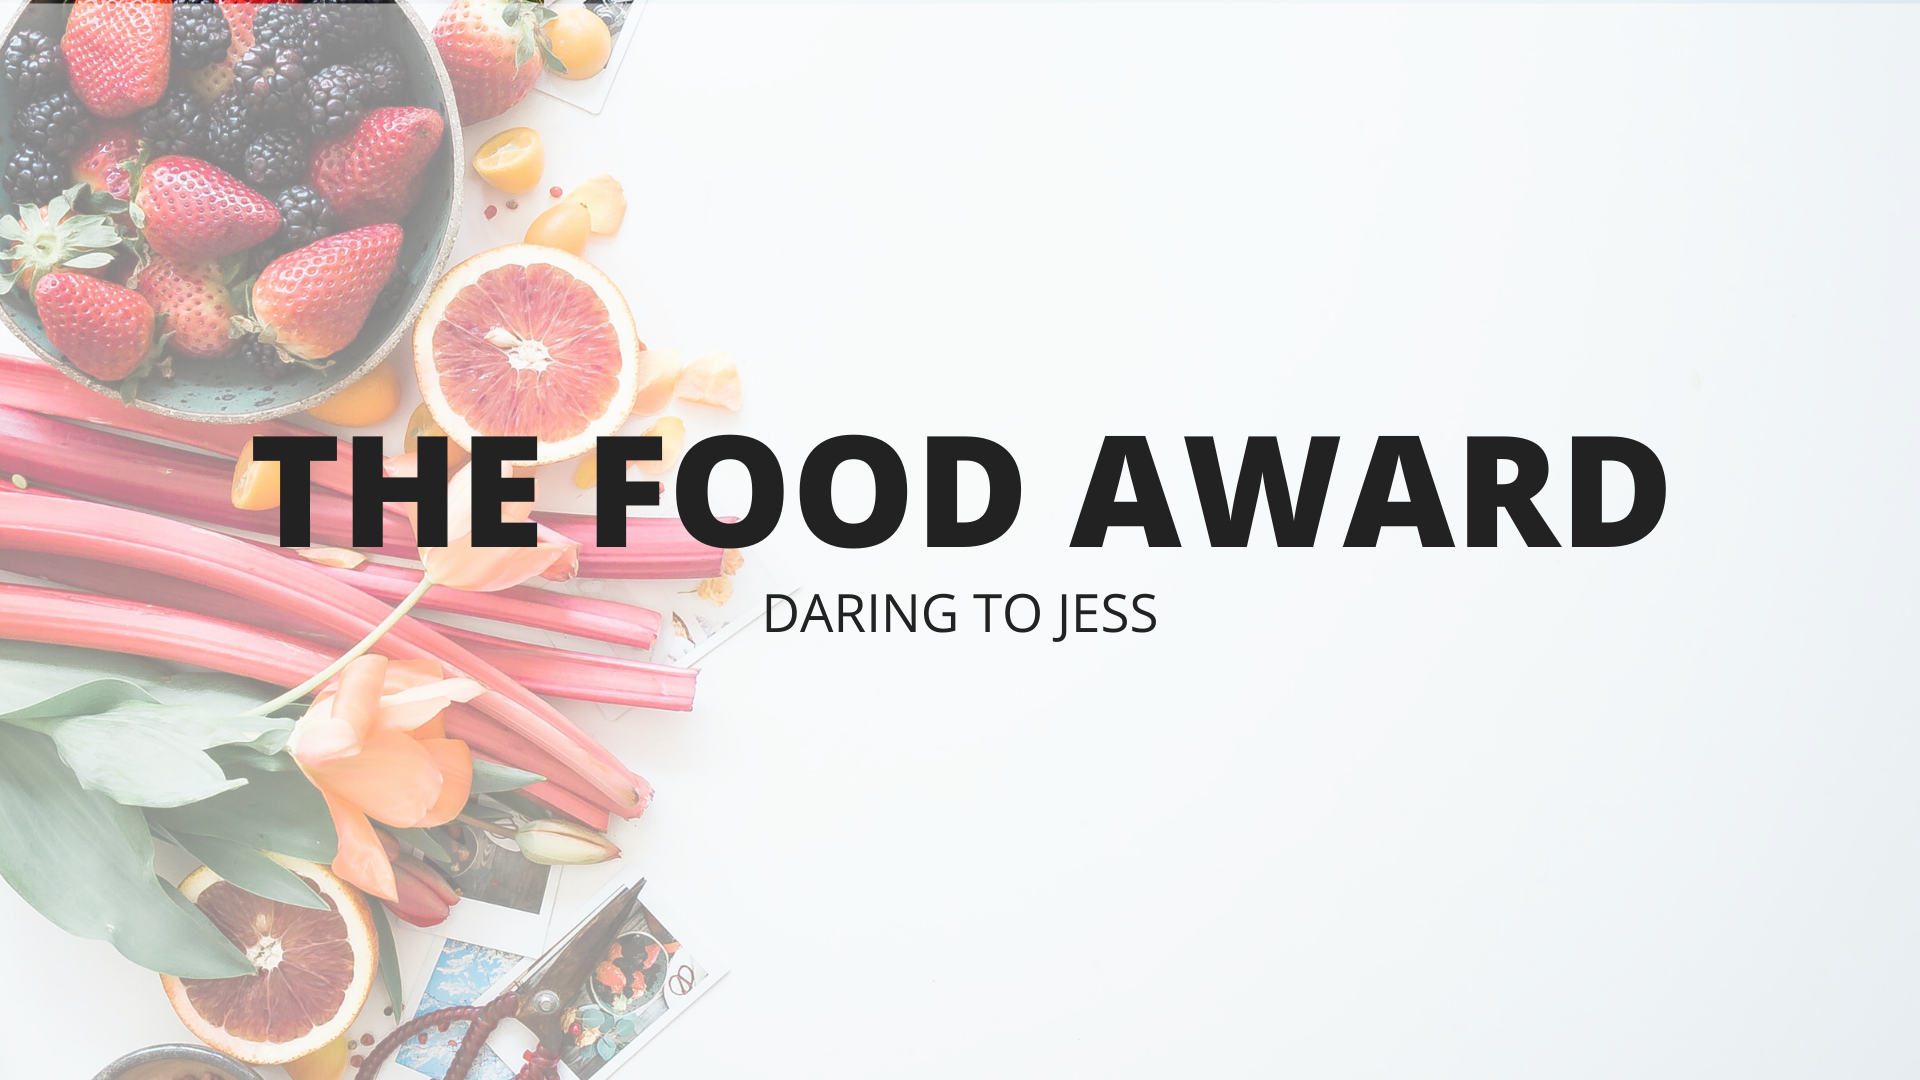 The Food Award